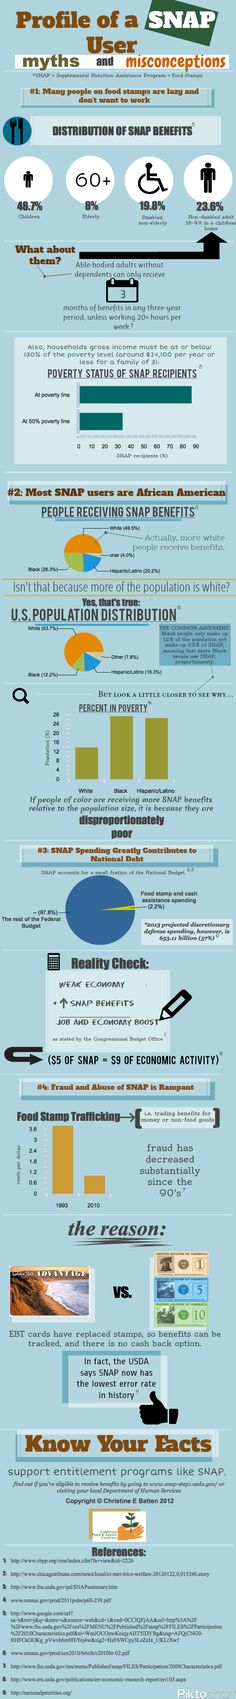 Who Receives 'Food Stamps'? infographic by the the California Food & Justice Coalition